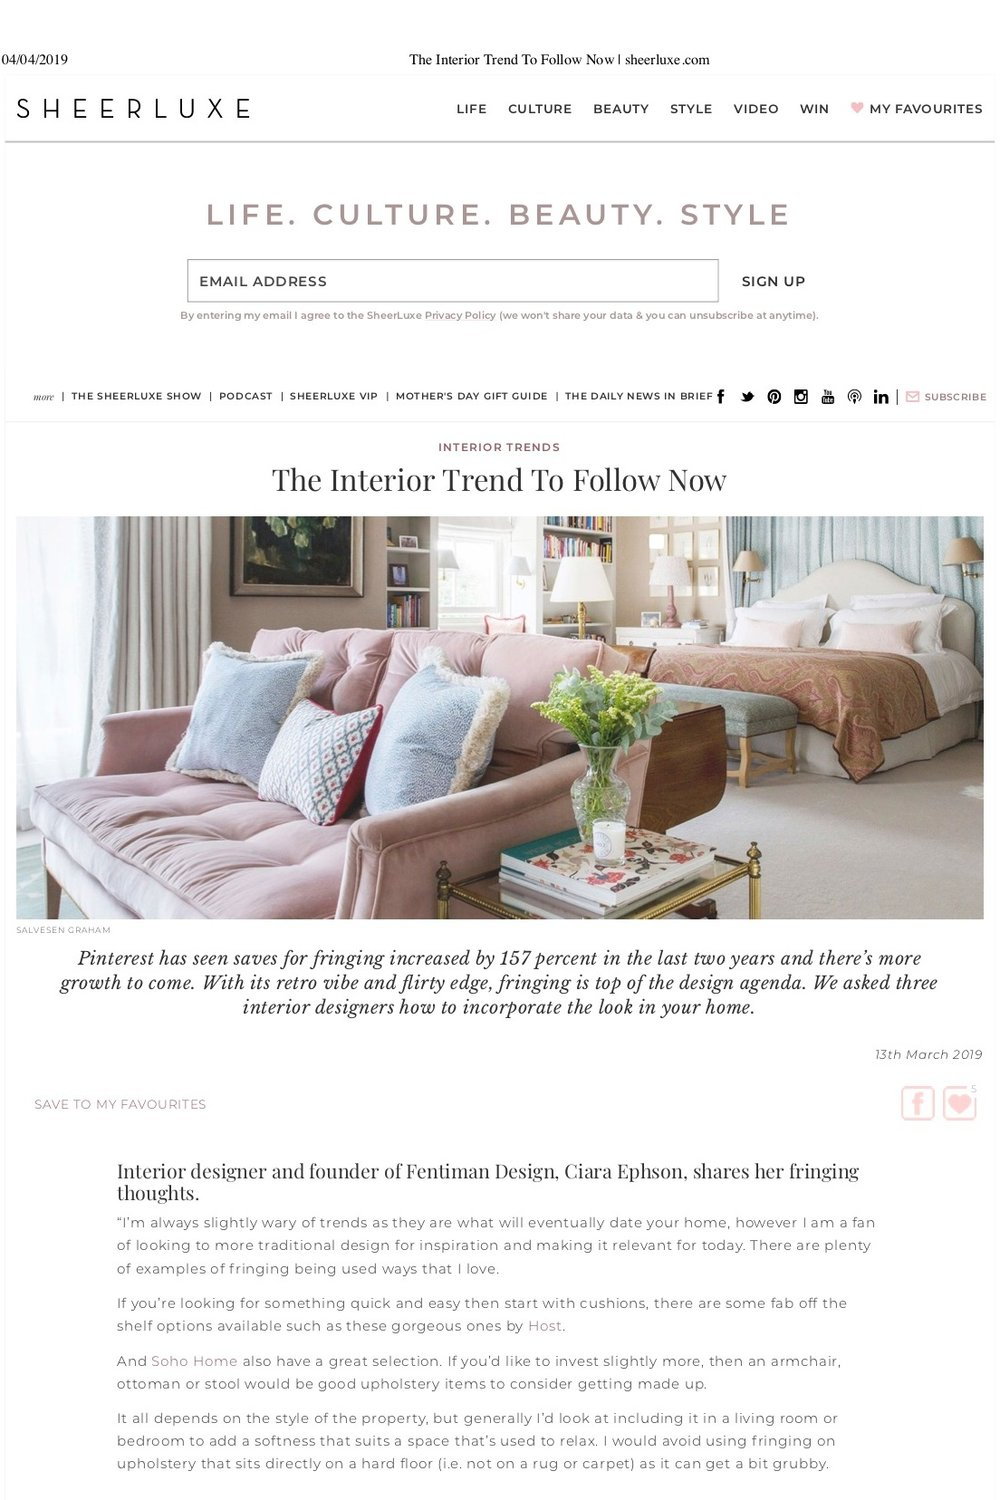 Sheerluxe - The Interior Trend To Follow Now